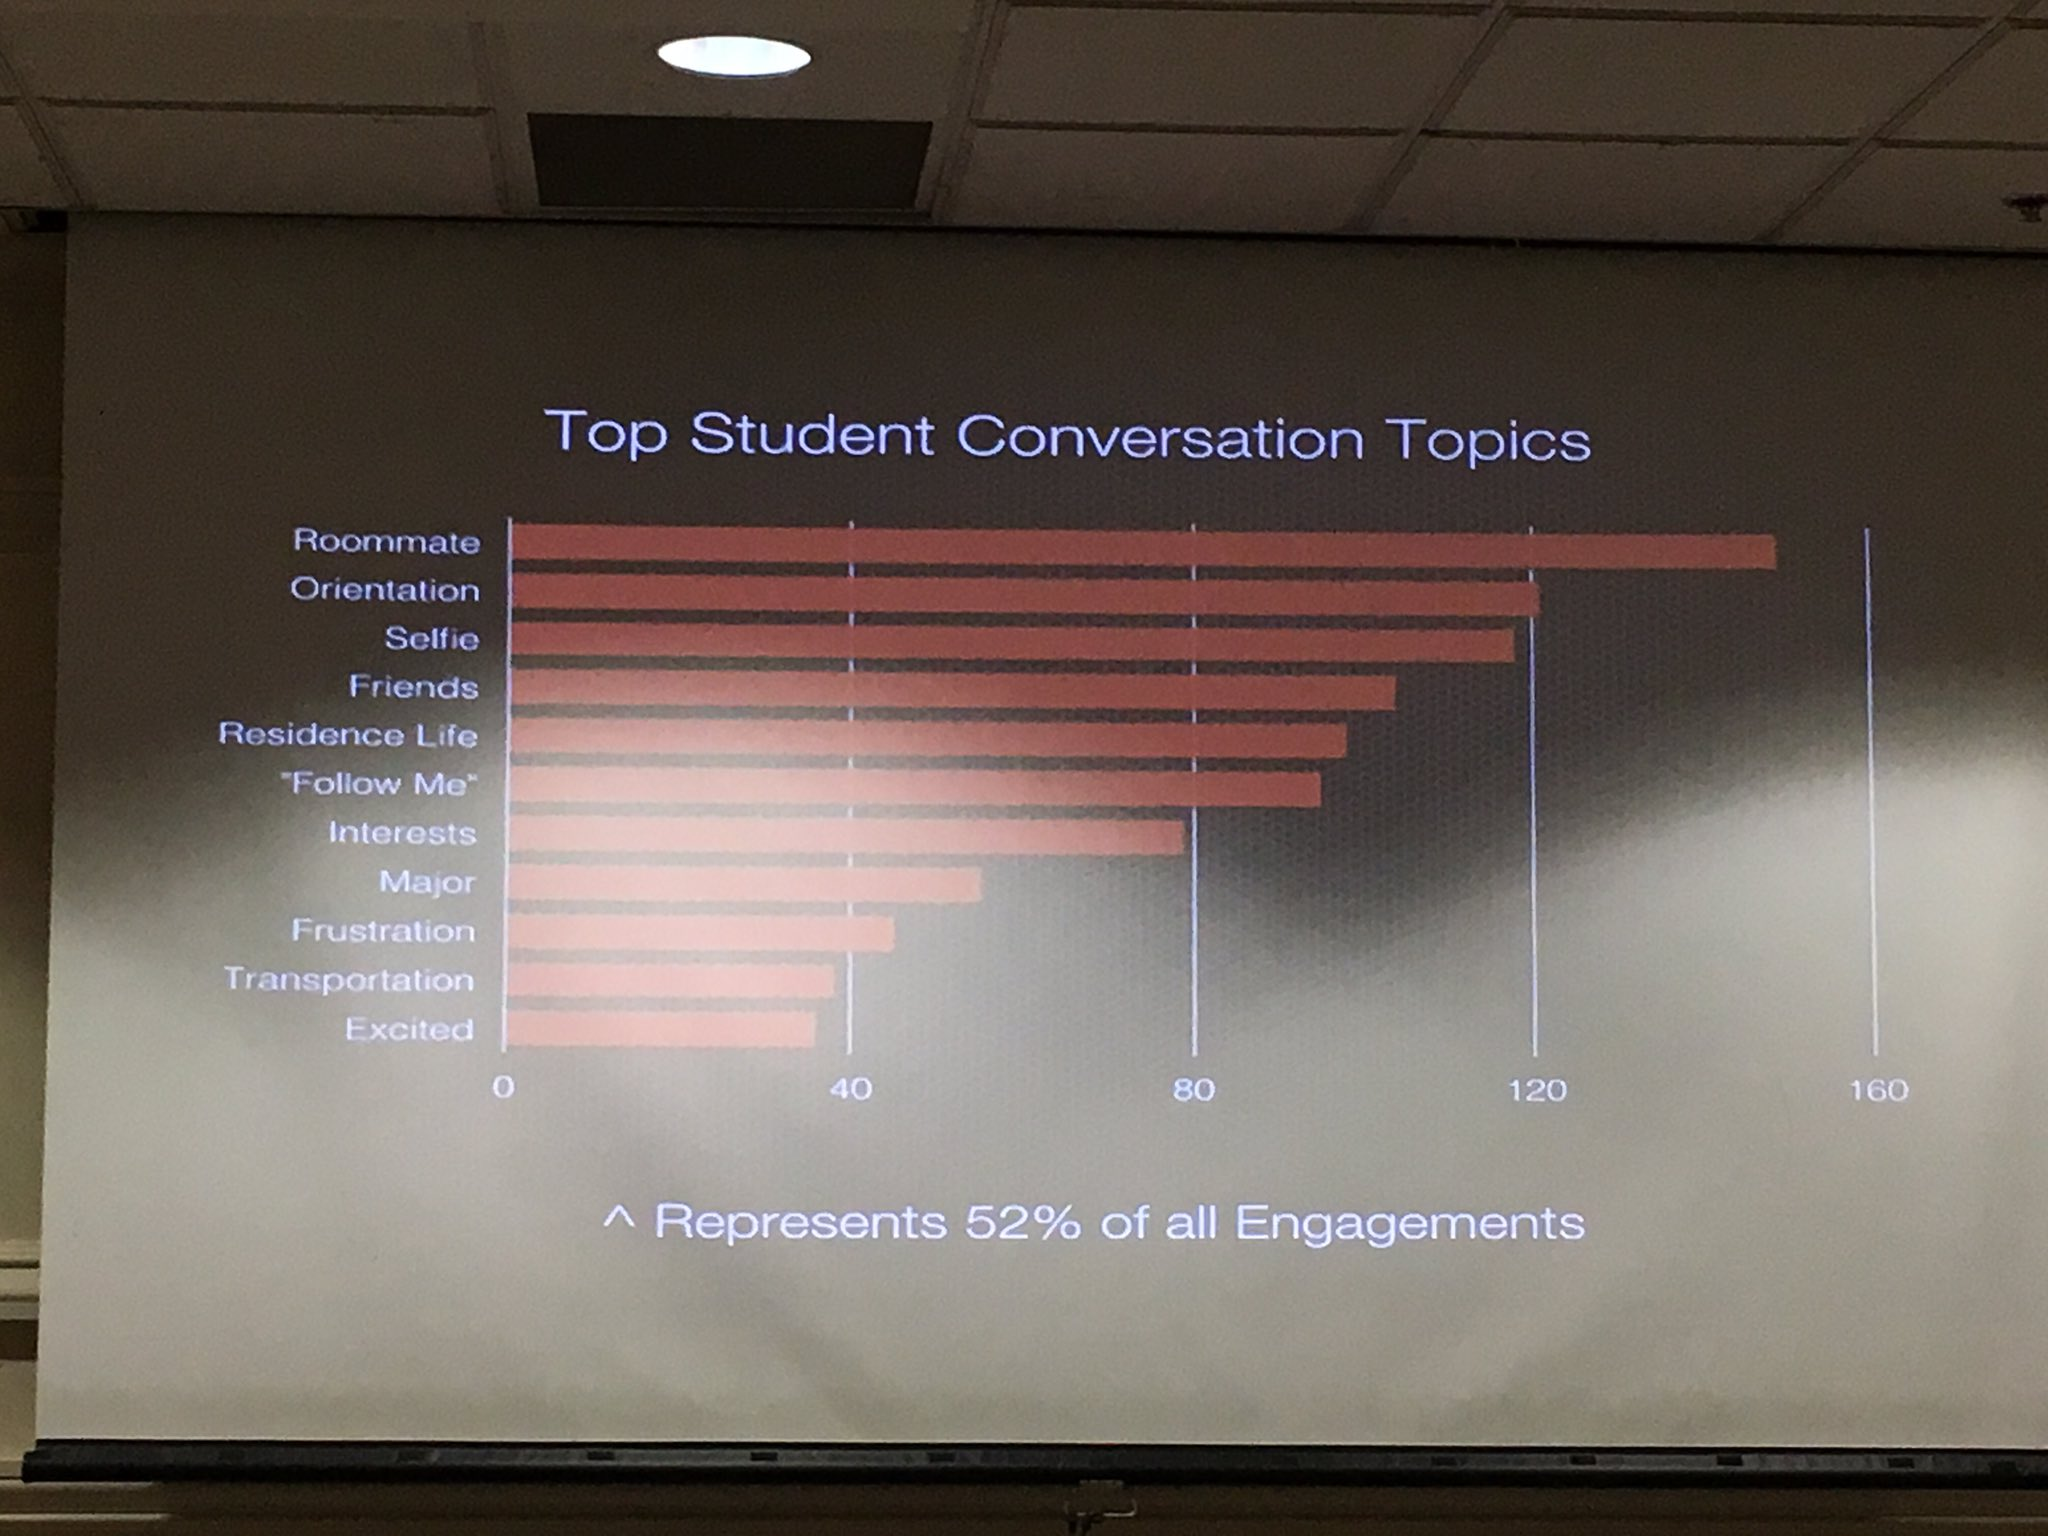 To student conversation topics on social media! Note there is not a single academic topic on the list. #heweb16 #tie9 https://t.co/JCFZRFQqHM